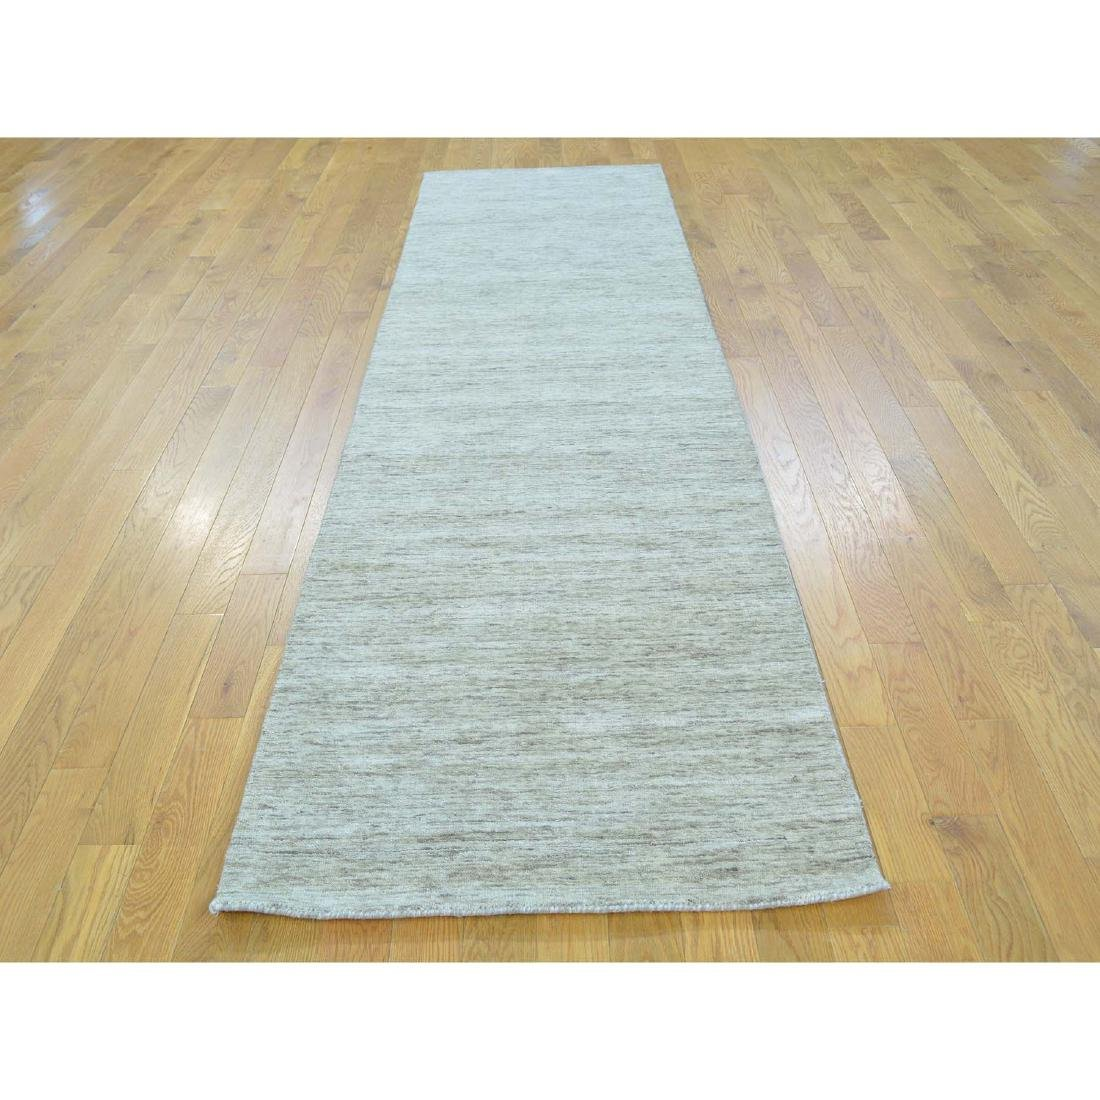 Thick And Plush Modern Hand Loomed Gabbeh Runner - 2